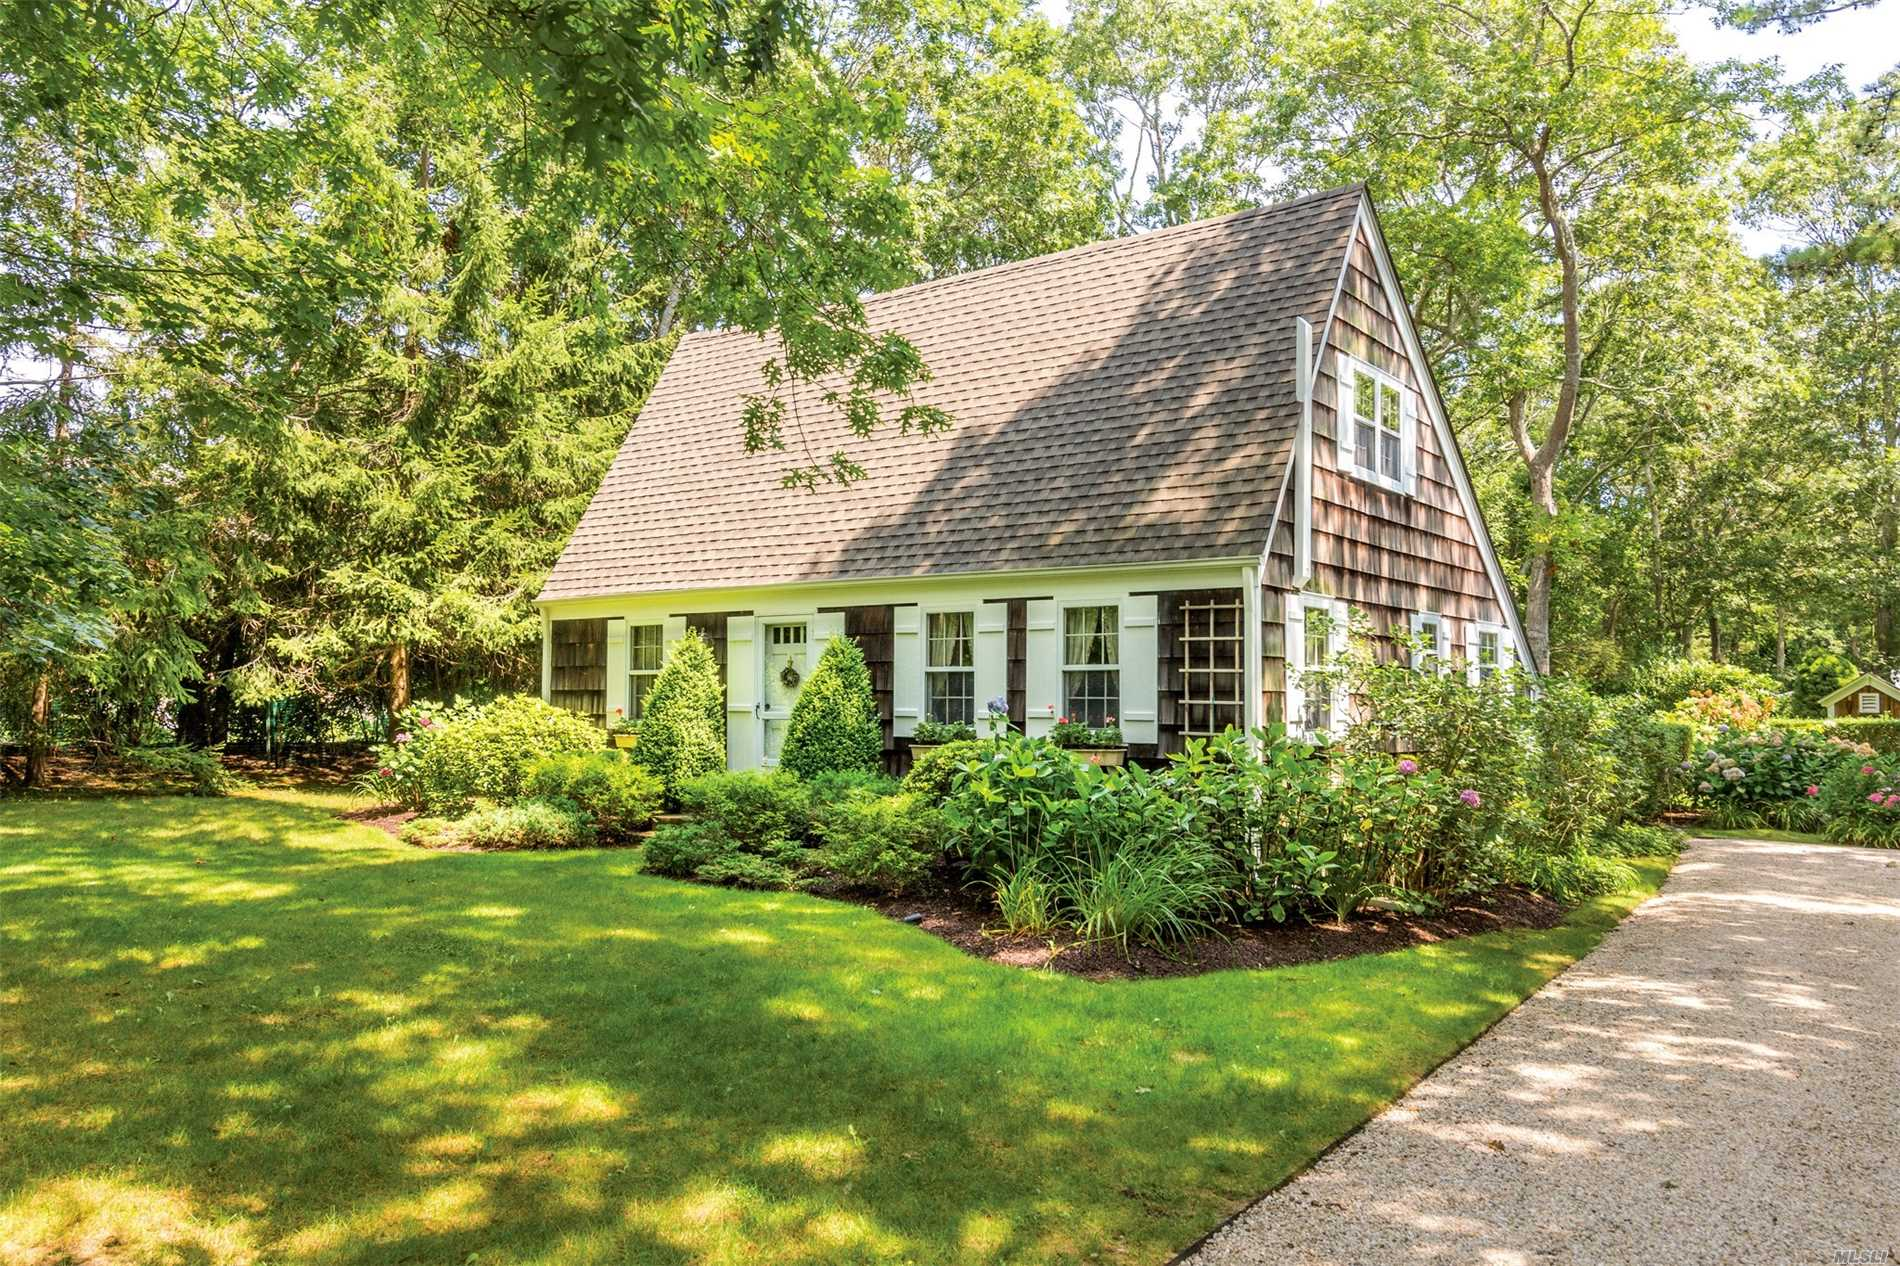 Charming Shingled Cottage In Wainscott - The Best Priced Home South Of The Highway. Surround Yourself With The Warmth Of Wood In Open Main Floor Living Areas With Custom Paneled Walls. Living/Dining Room Has A Wood-Burning Fireplace; A Bedroom And Full Bath Are Down The Hall. The Master Bedroom Is Upstairs In An A-Frame Loft With Beamed Ceiling And Wood-Paneled Walls. Relax In The Private Backyard, With A Shingled Shed And Brick Patio. Famed Beach Lane Is Moments Away. First Time Listed!